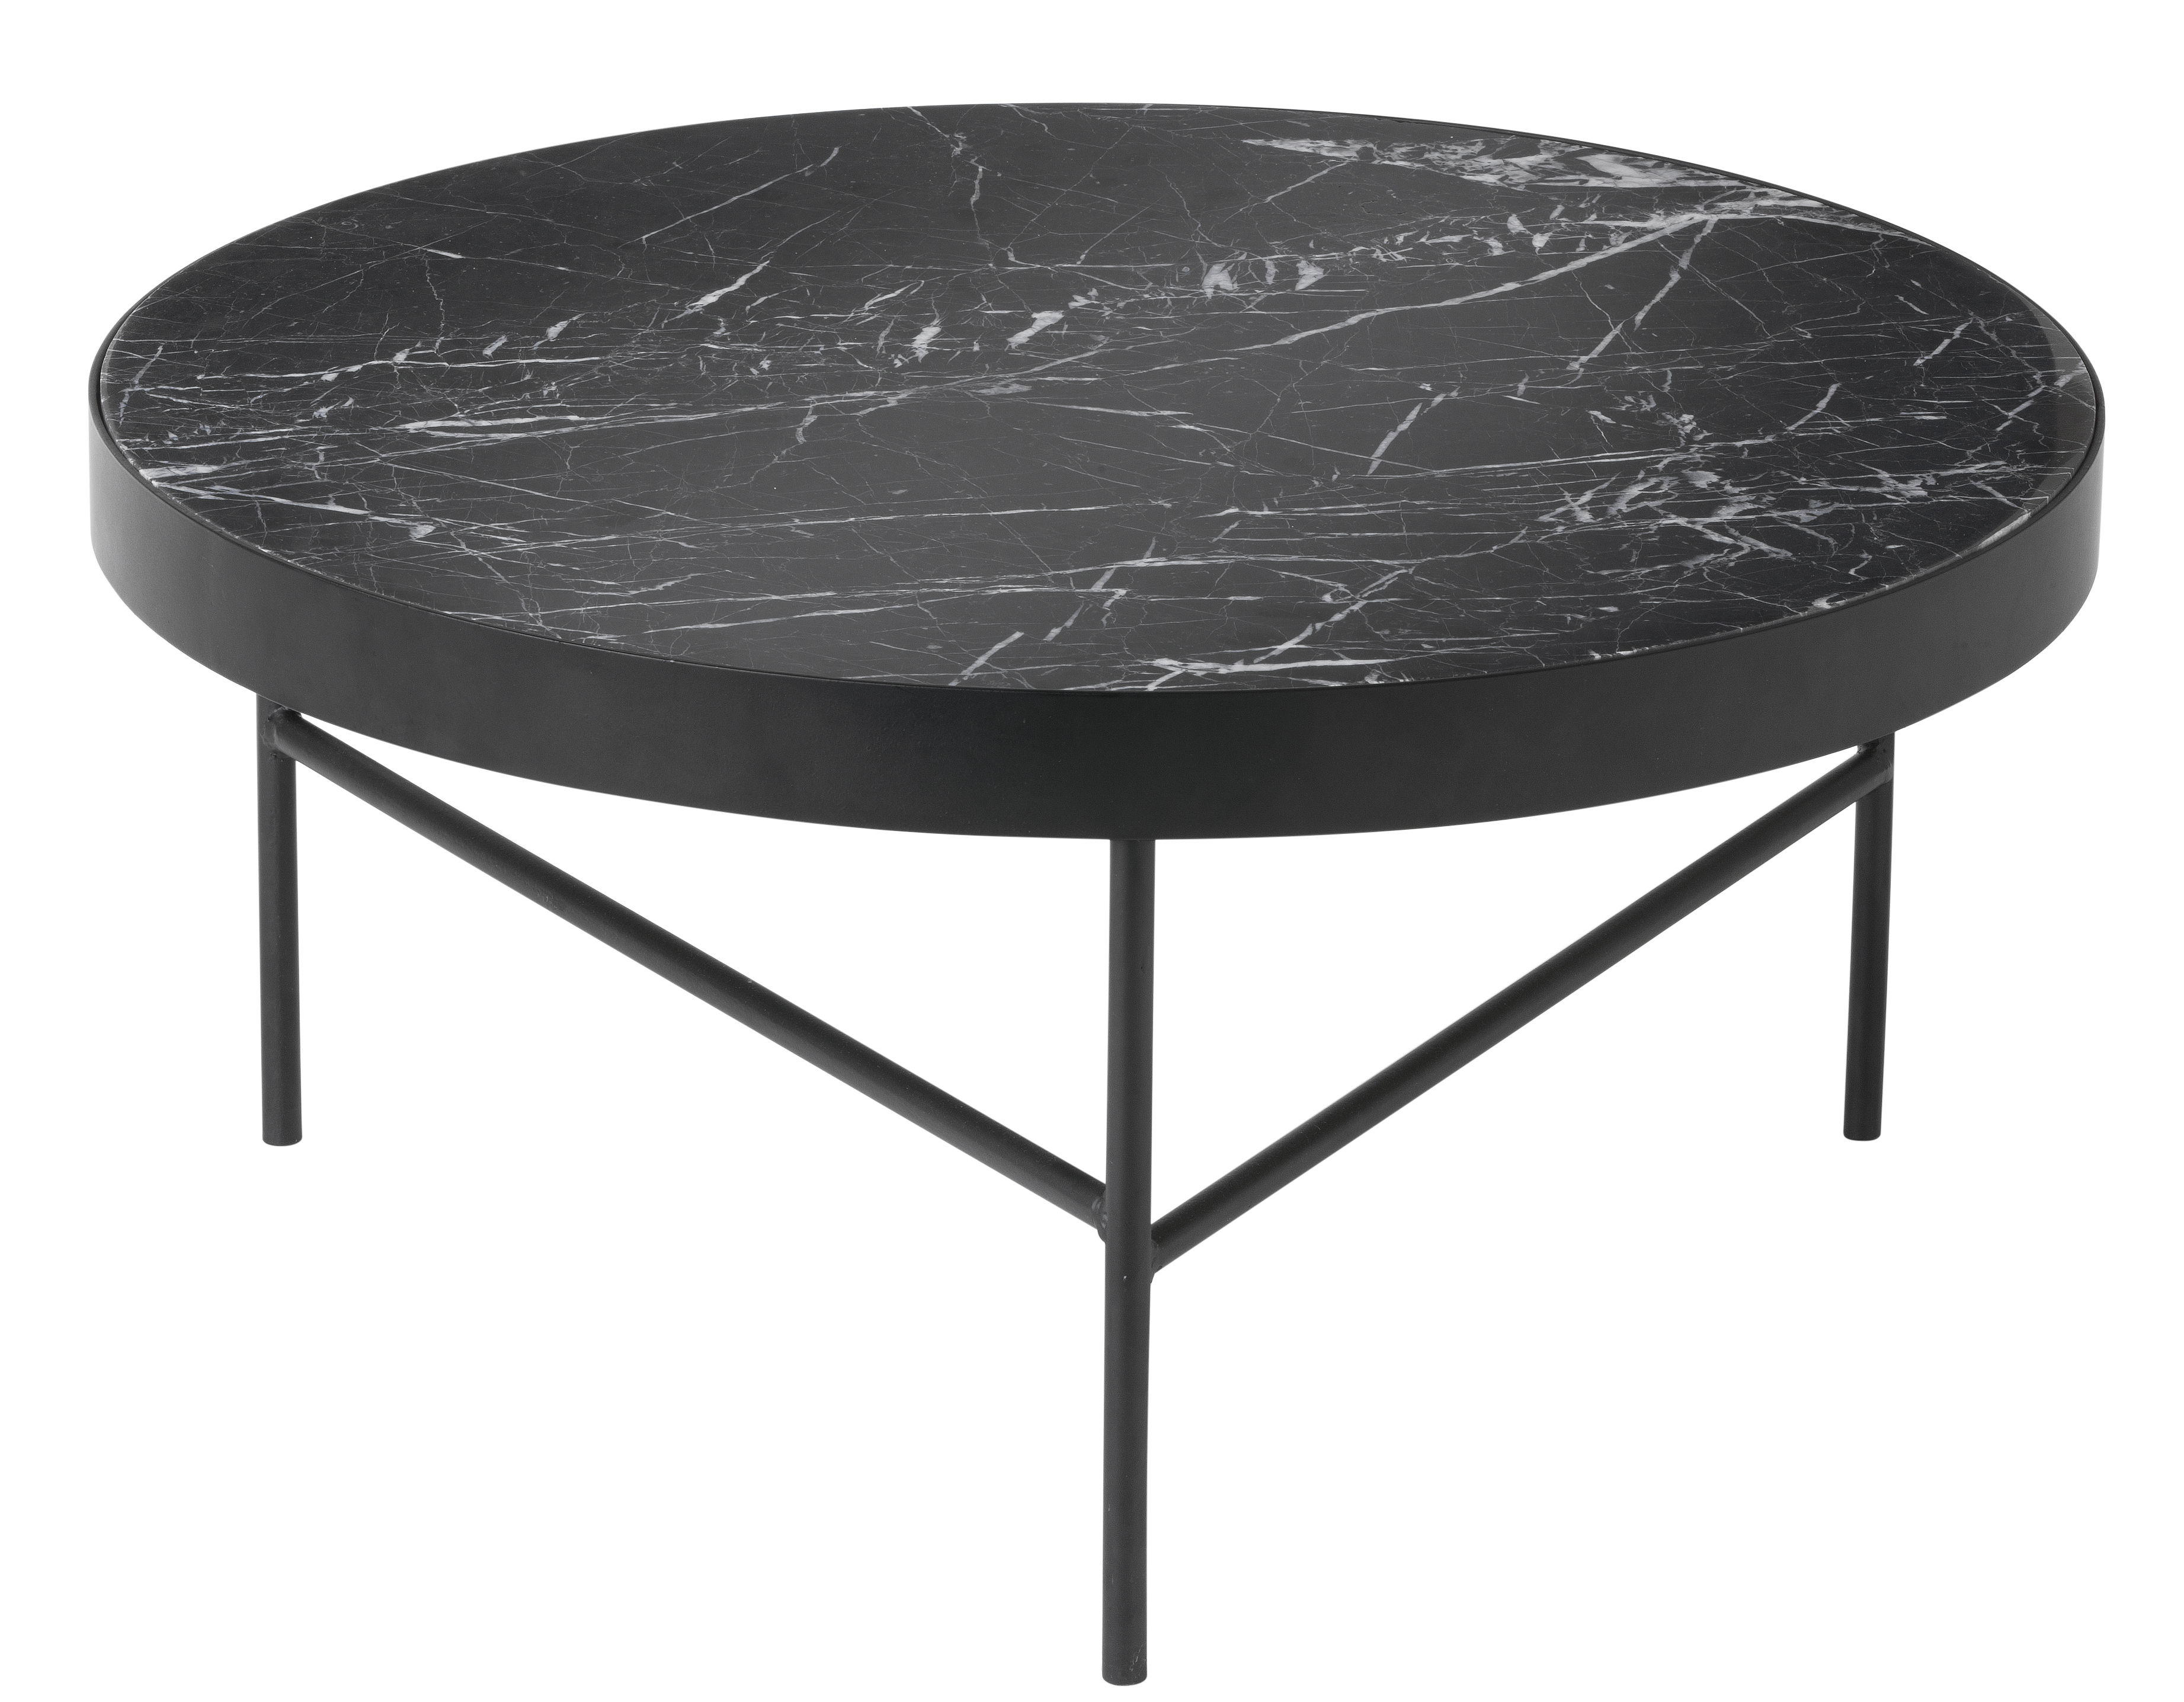 Table Basse Marble Large Ferm Living Marbre Noir Pied Noir H